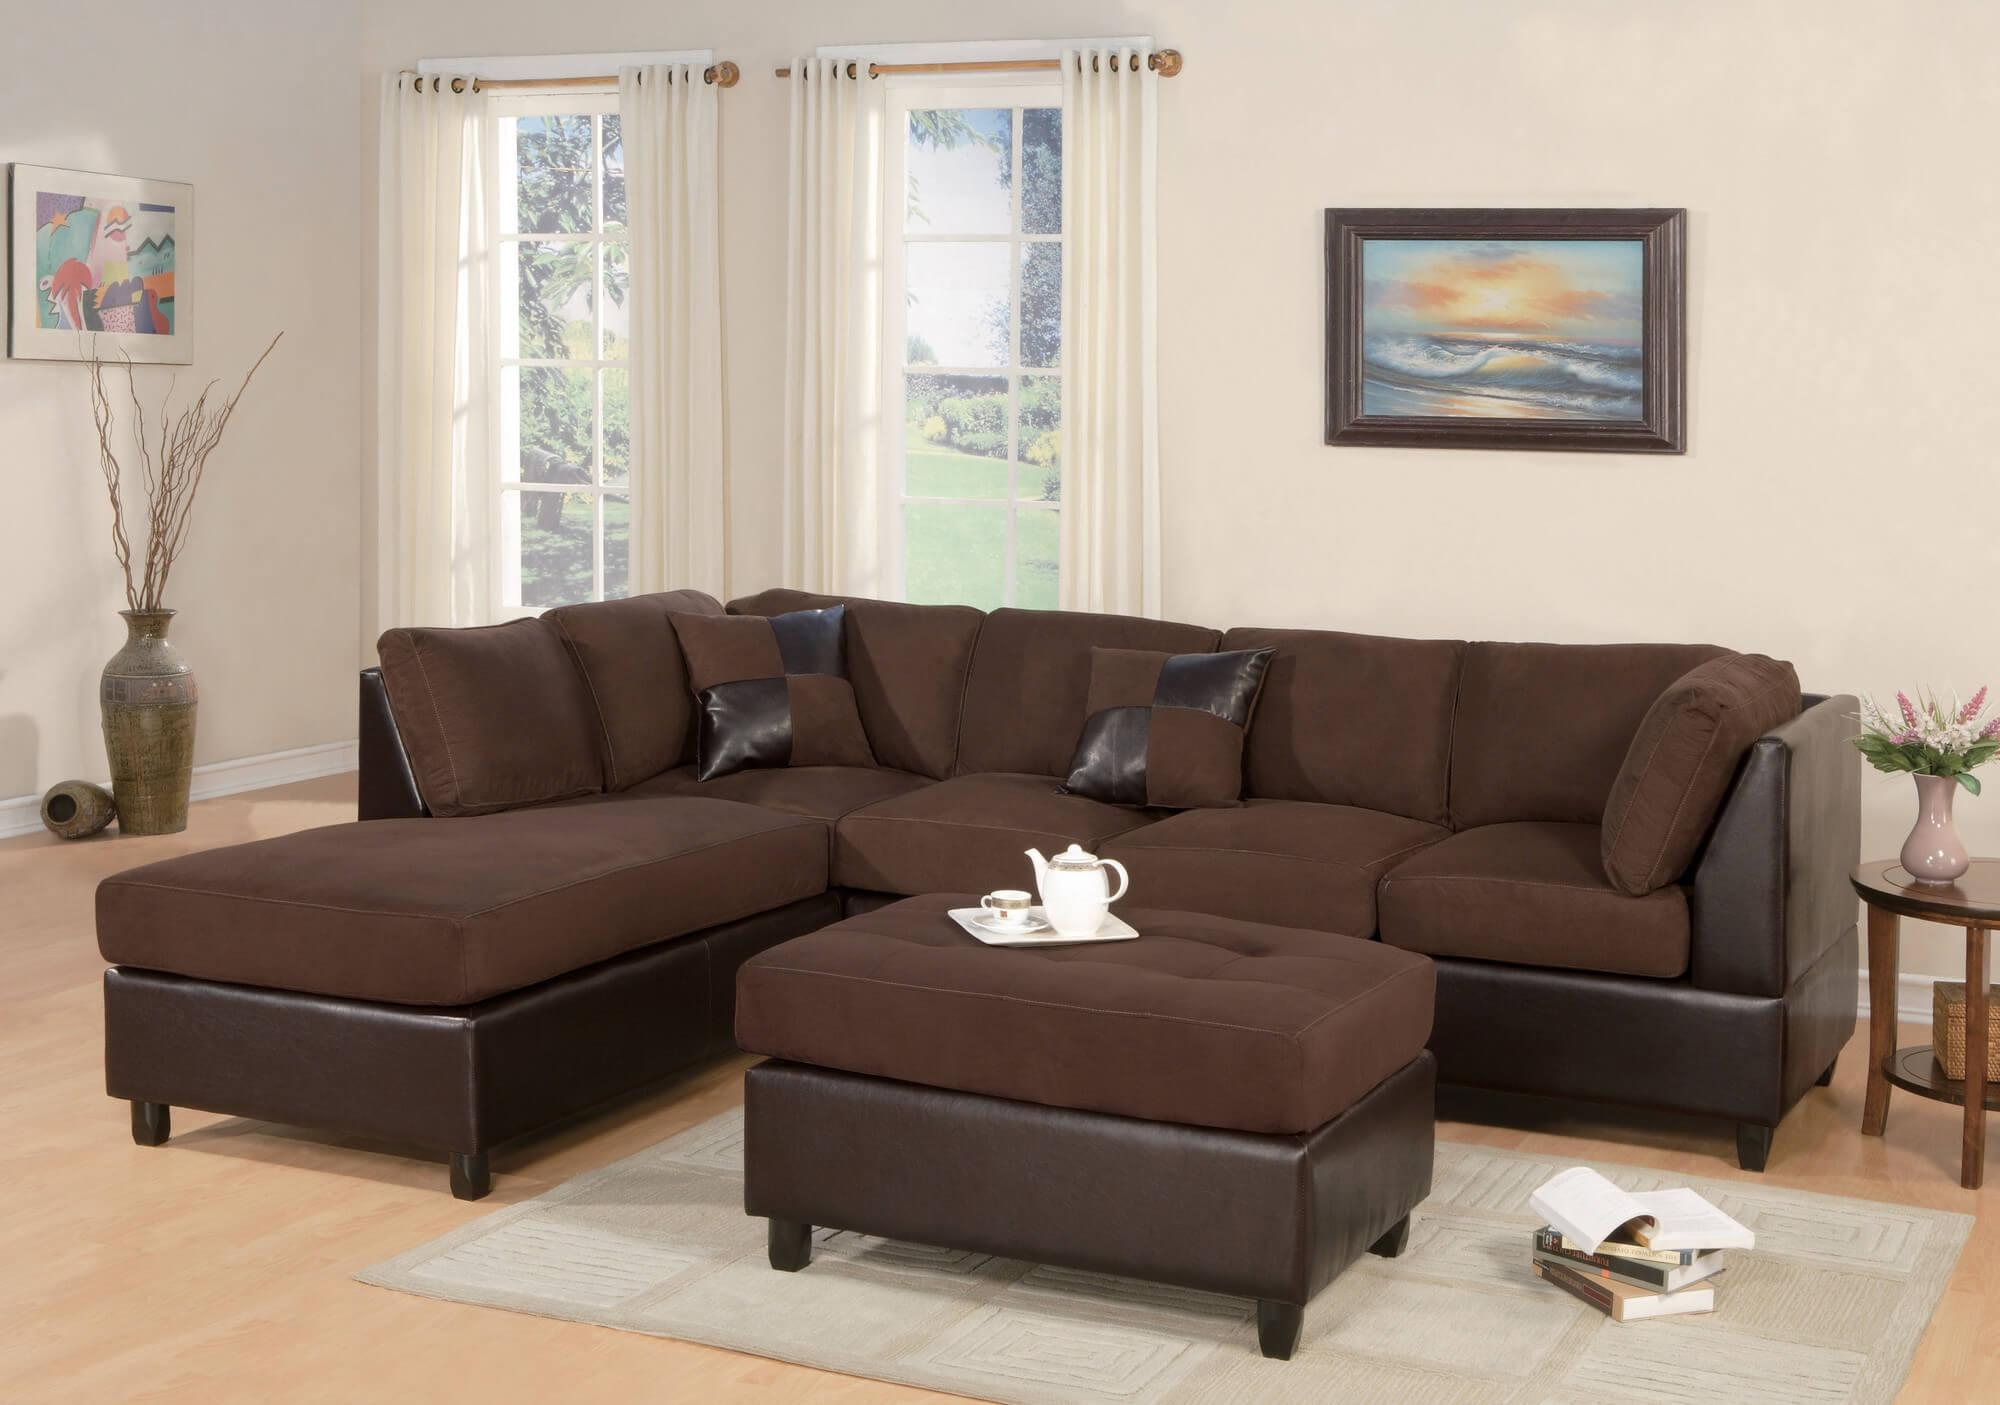 Sofas Center : Unusual Big Lots Sofa Images Design Couch Sleeper Regarding Big Lots Sofas (View 10 of 20)